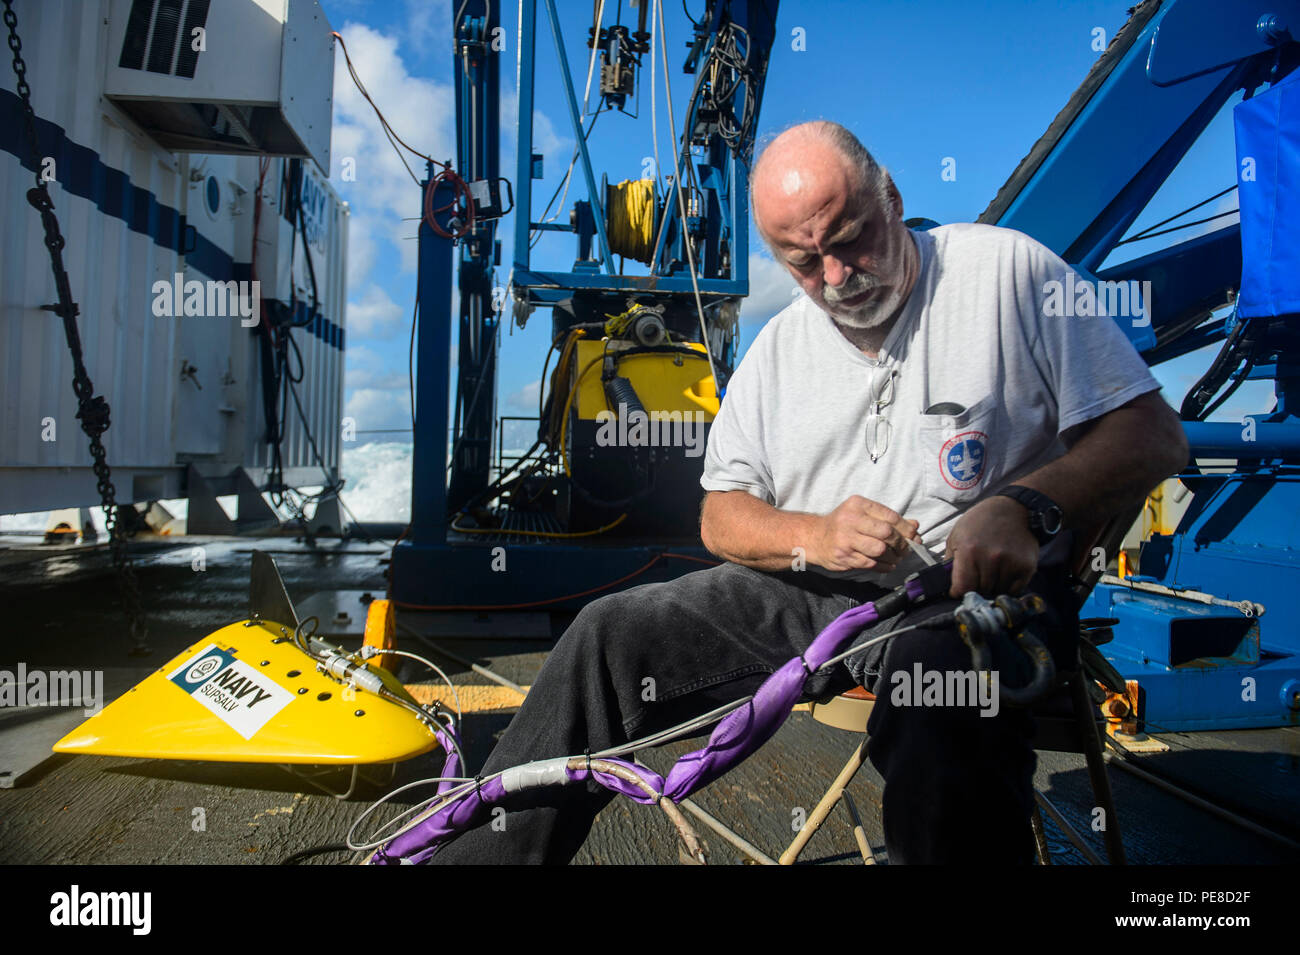 151023-N-RZ218-102  BAHAMAS (Oct. 23, 2015) Mike Unzicker, a contractor with Phoenix International Incorporated, prepare a tow pinger locater 25 (TPL 25) for the upcoming salvage mission aboard USNS Apache (T-ATF 172). USNS Apache departed Norfolk, Va., Oct. 19, to begin searching for wreckage from the missing U.S. Flagged merchant vessel El Faro. The ship is equipped with several pieces of underwater search equipment, including a voyage data recorder locator, side-scan sonar and an underwater remote operated vehicle. The Navy's mission will be to first locate the ship and, if possible, to ret - Stock Image